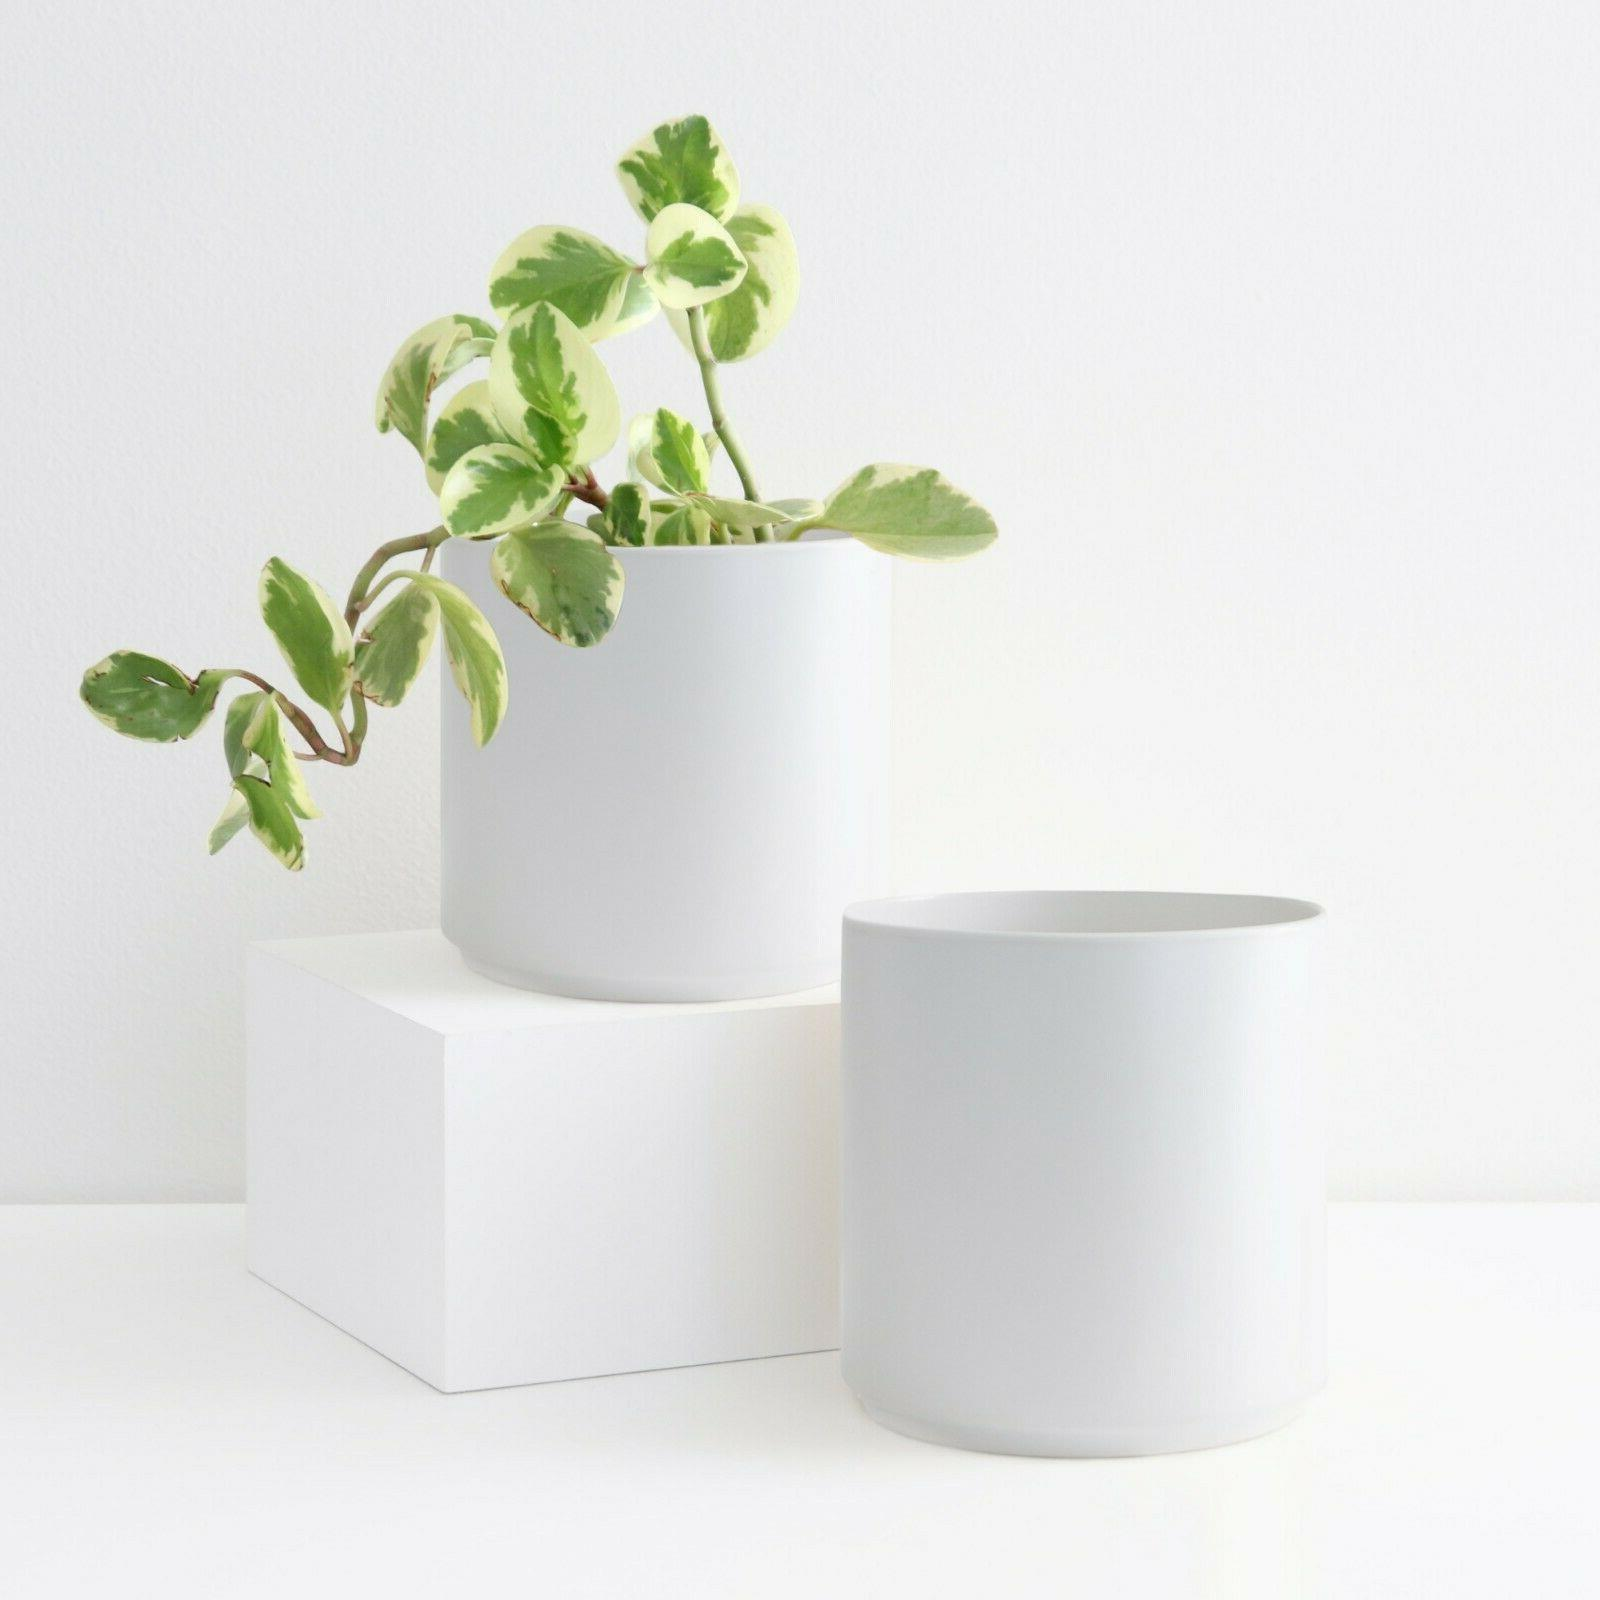 White Ceramic Plant Cylinder - Large Indoor/Outdoor in 5